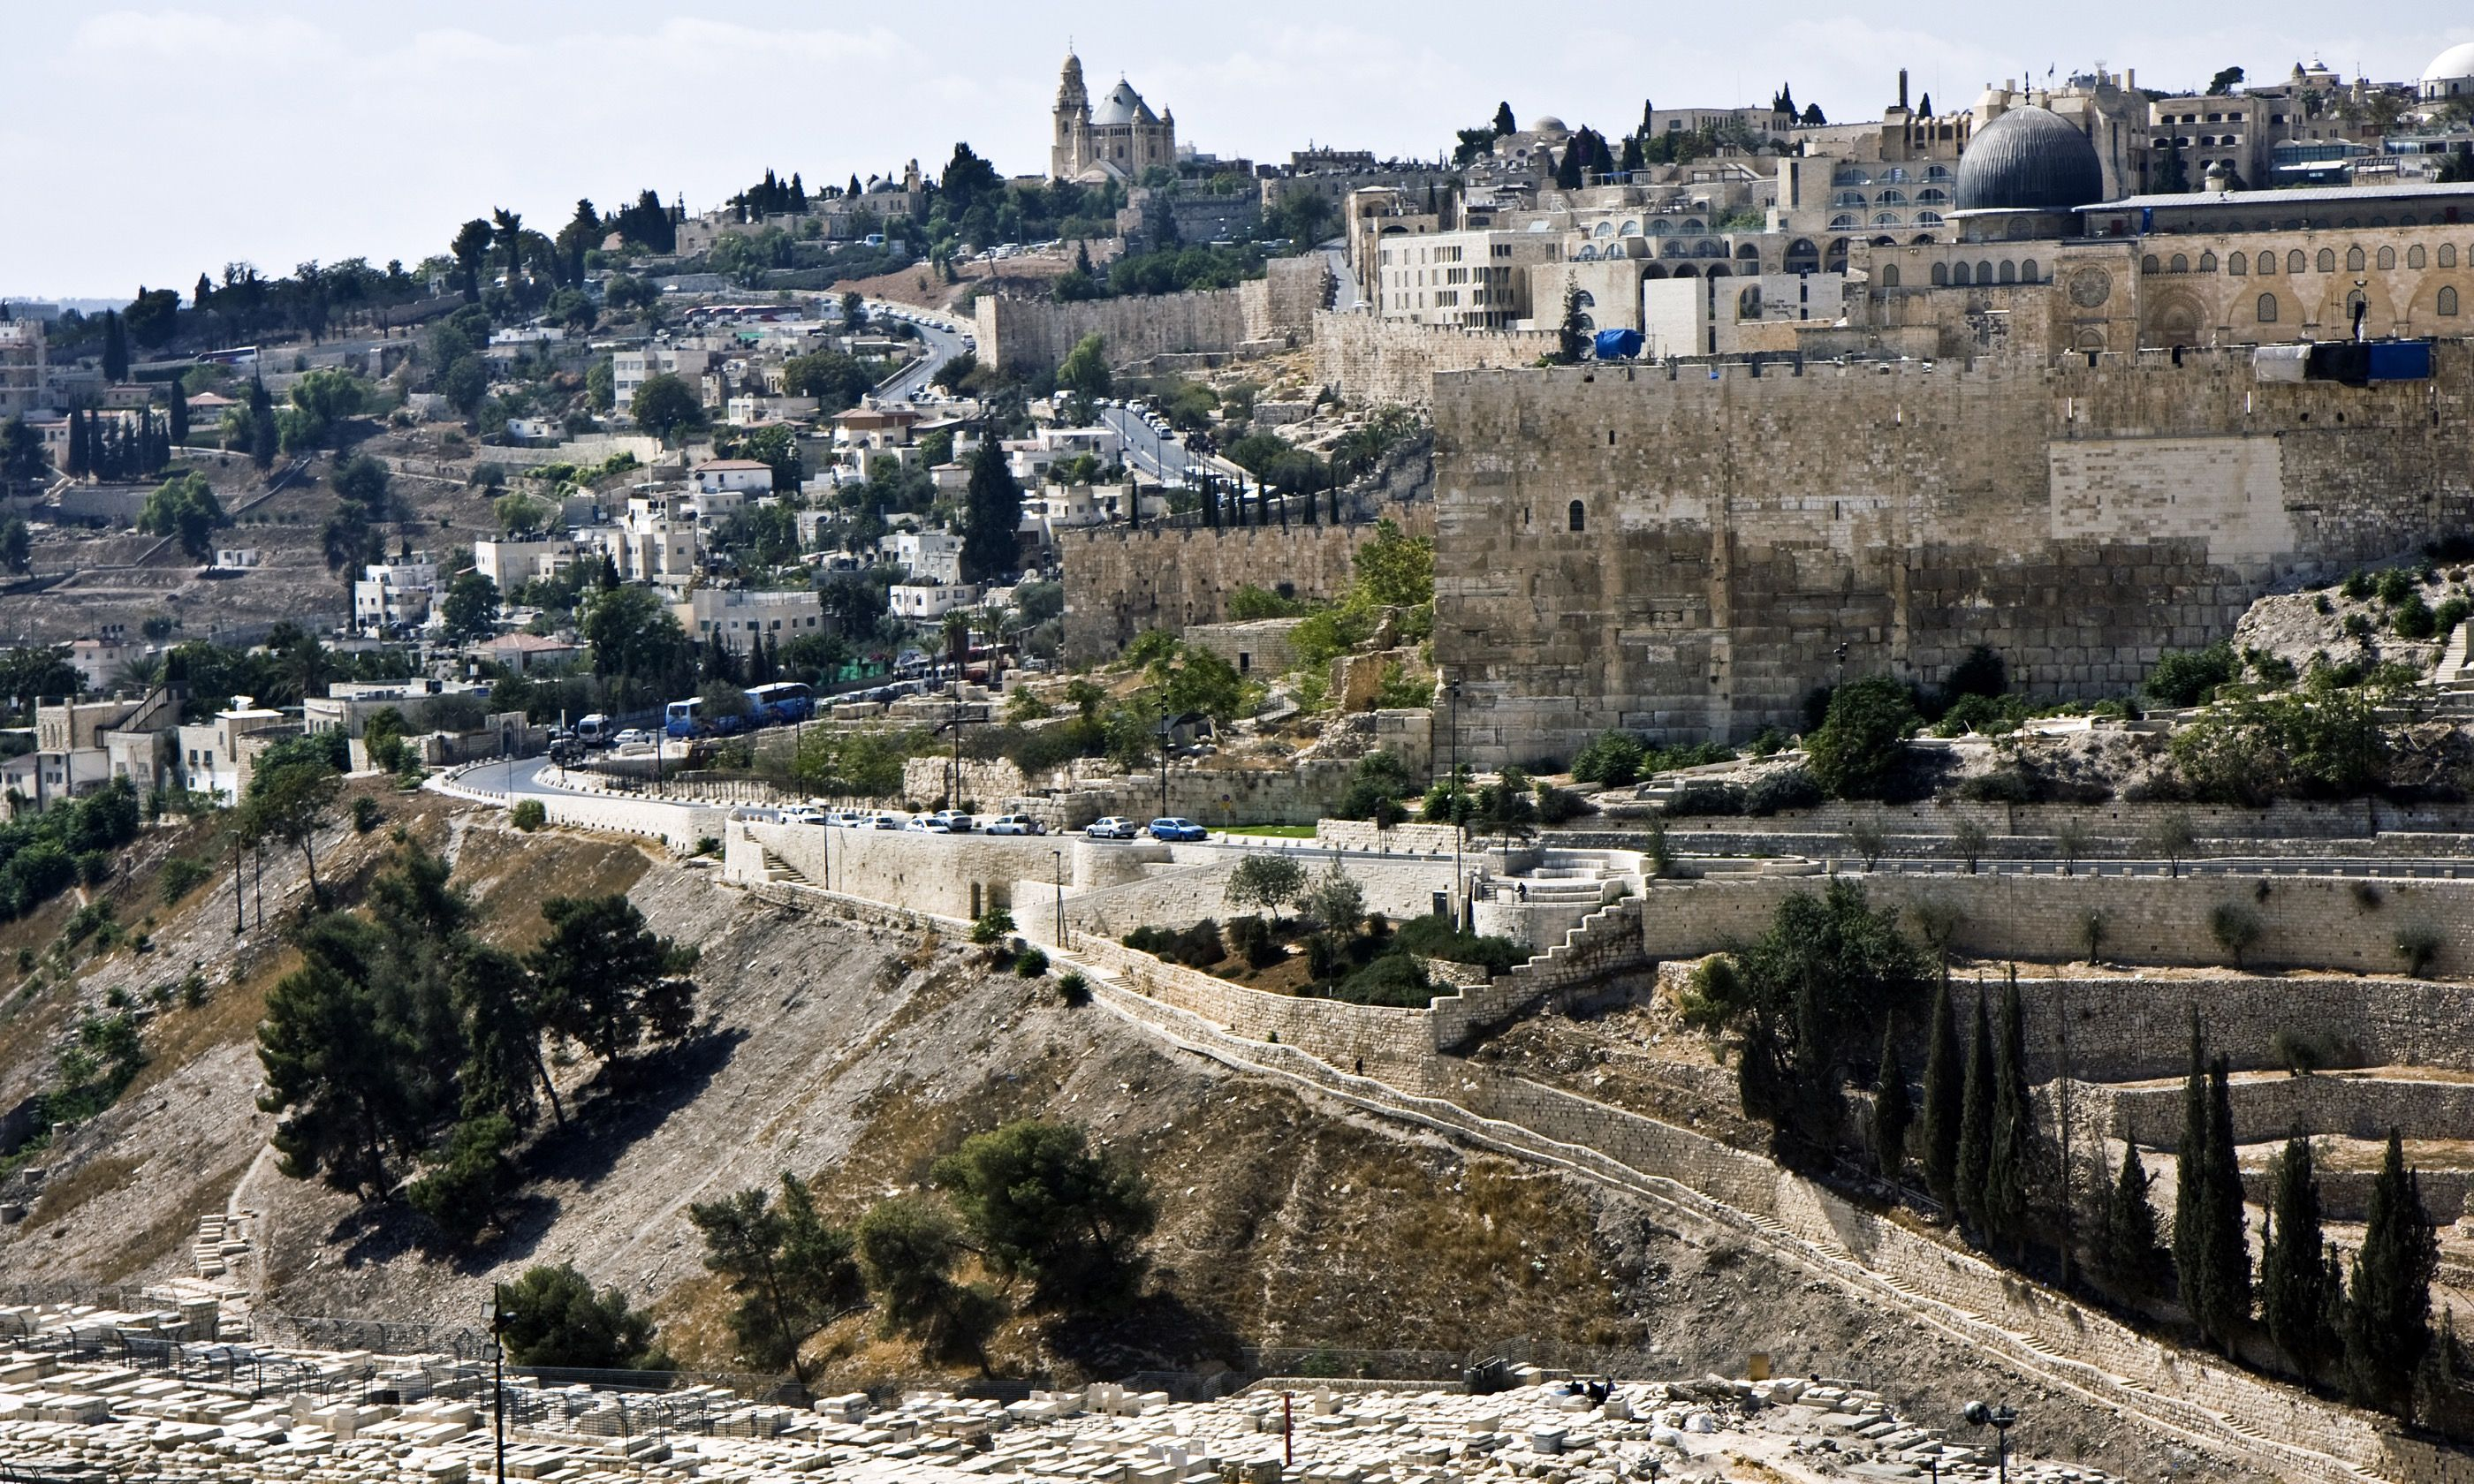 The walls of the Old City (Shutterstock.com)